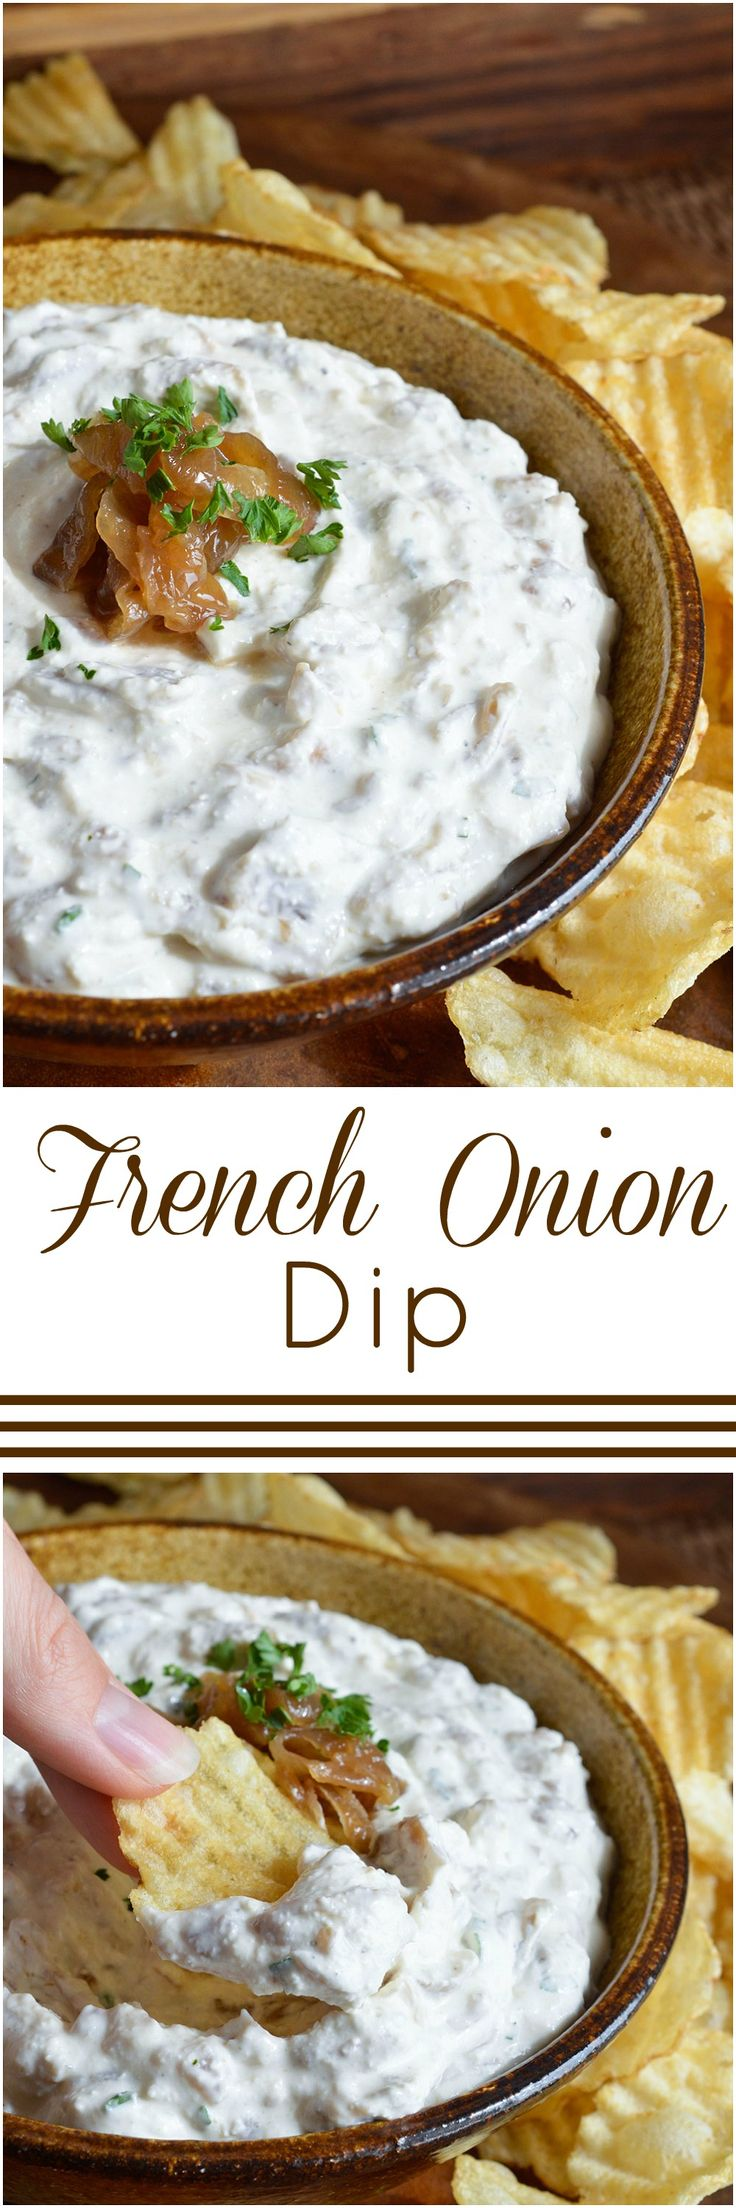 This French Onion Dip Recipe is the perfect party appetizer! Caramelized onions in a cold, creamy dip.